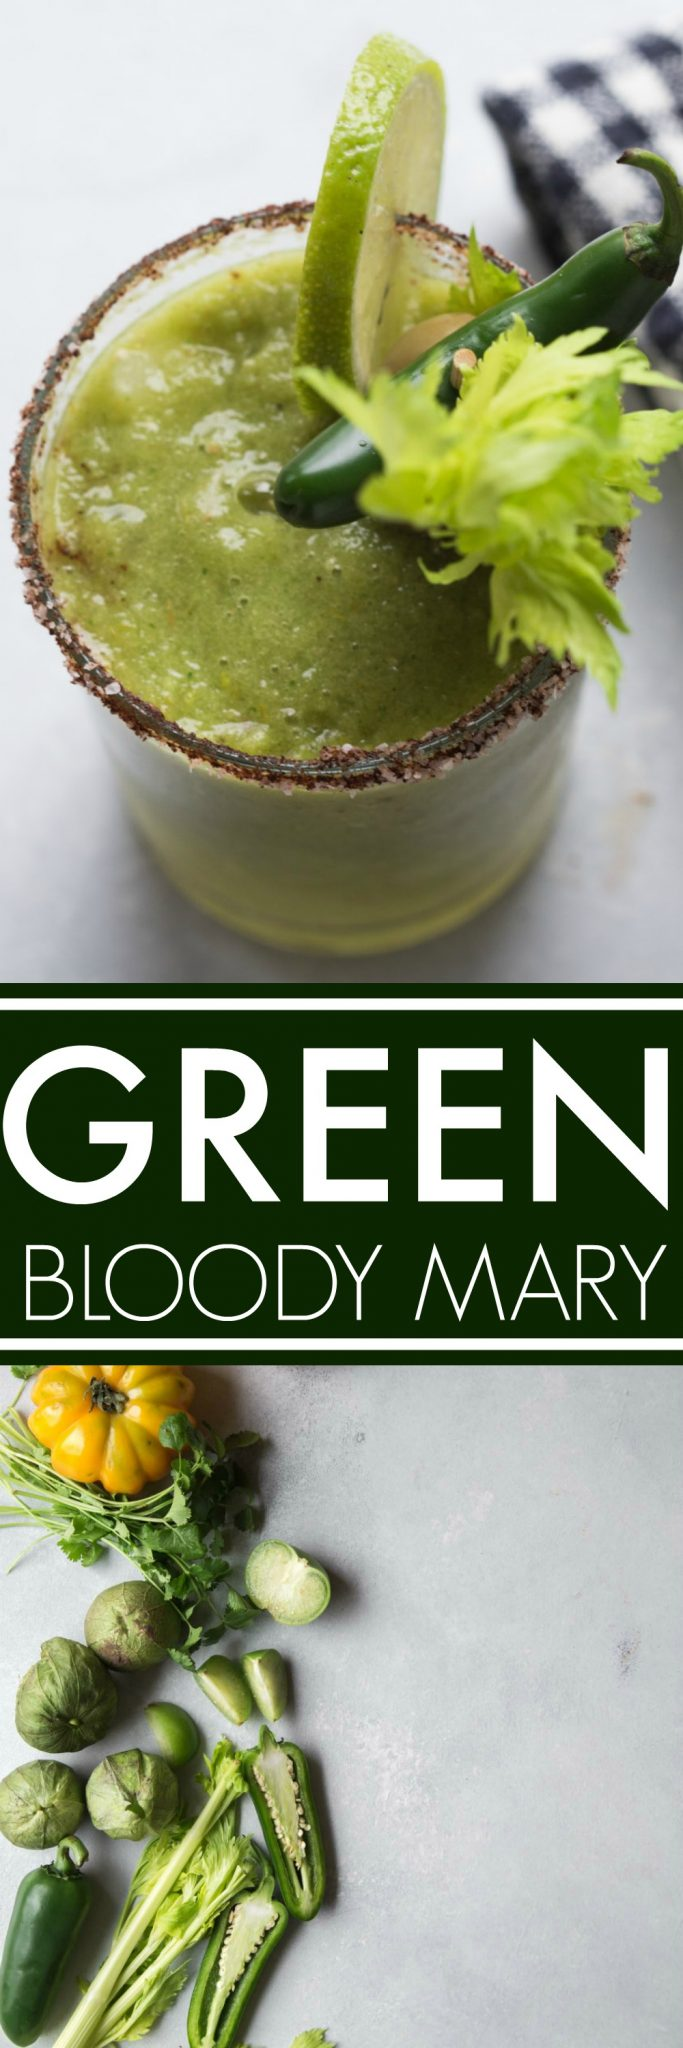 This Green Bloody Mary is perfect for St. Patrick's Day but delicious any time of the year! Made with tomatillos, yellow tomatoes horseradish for a great kick. #bloodymary #stpatricksday #greenbloodymary #cocktail #brunchcocktail